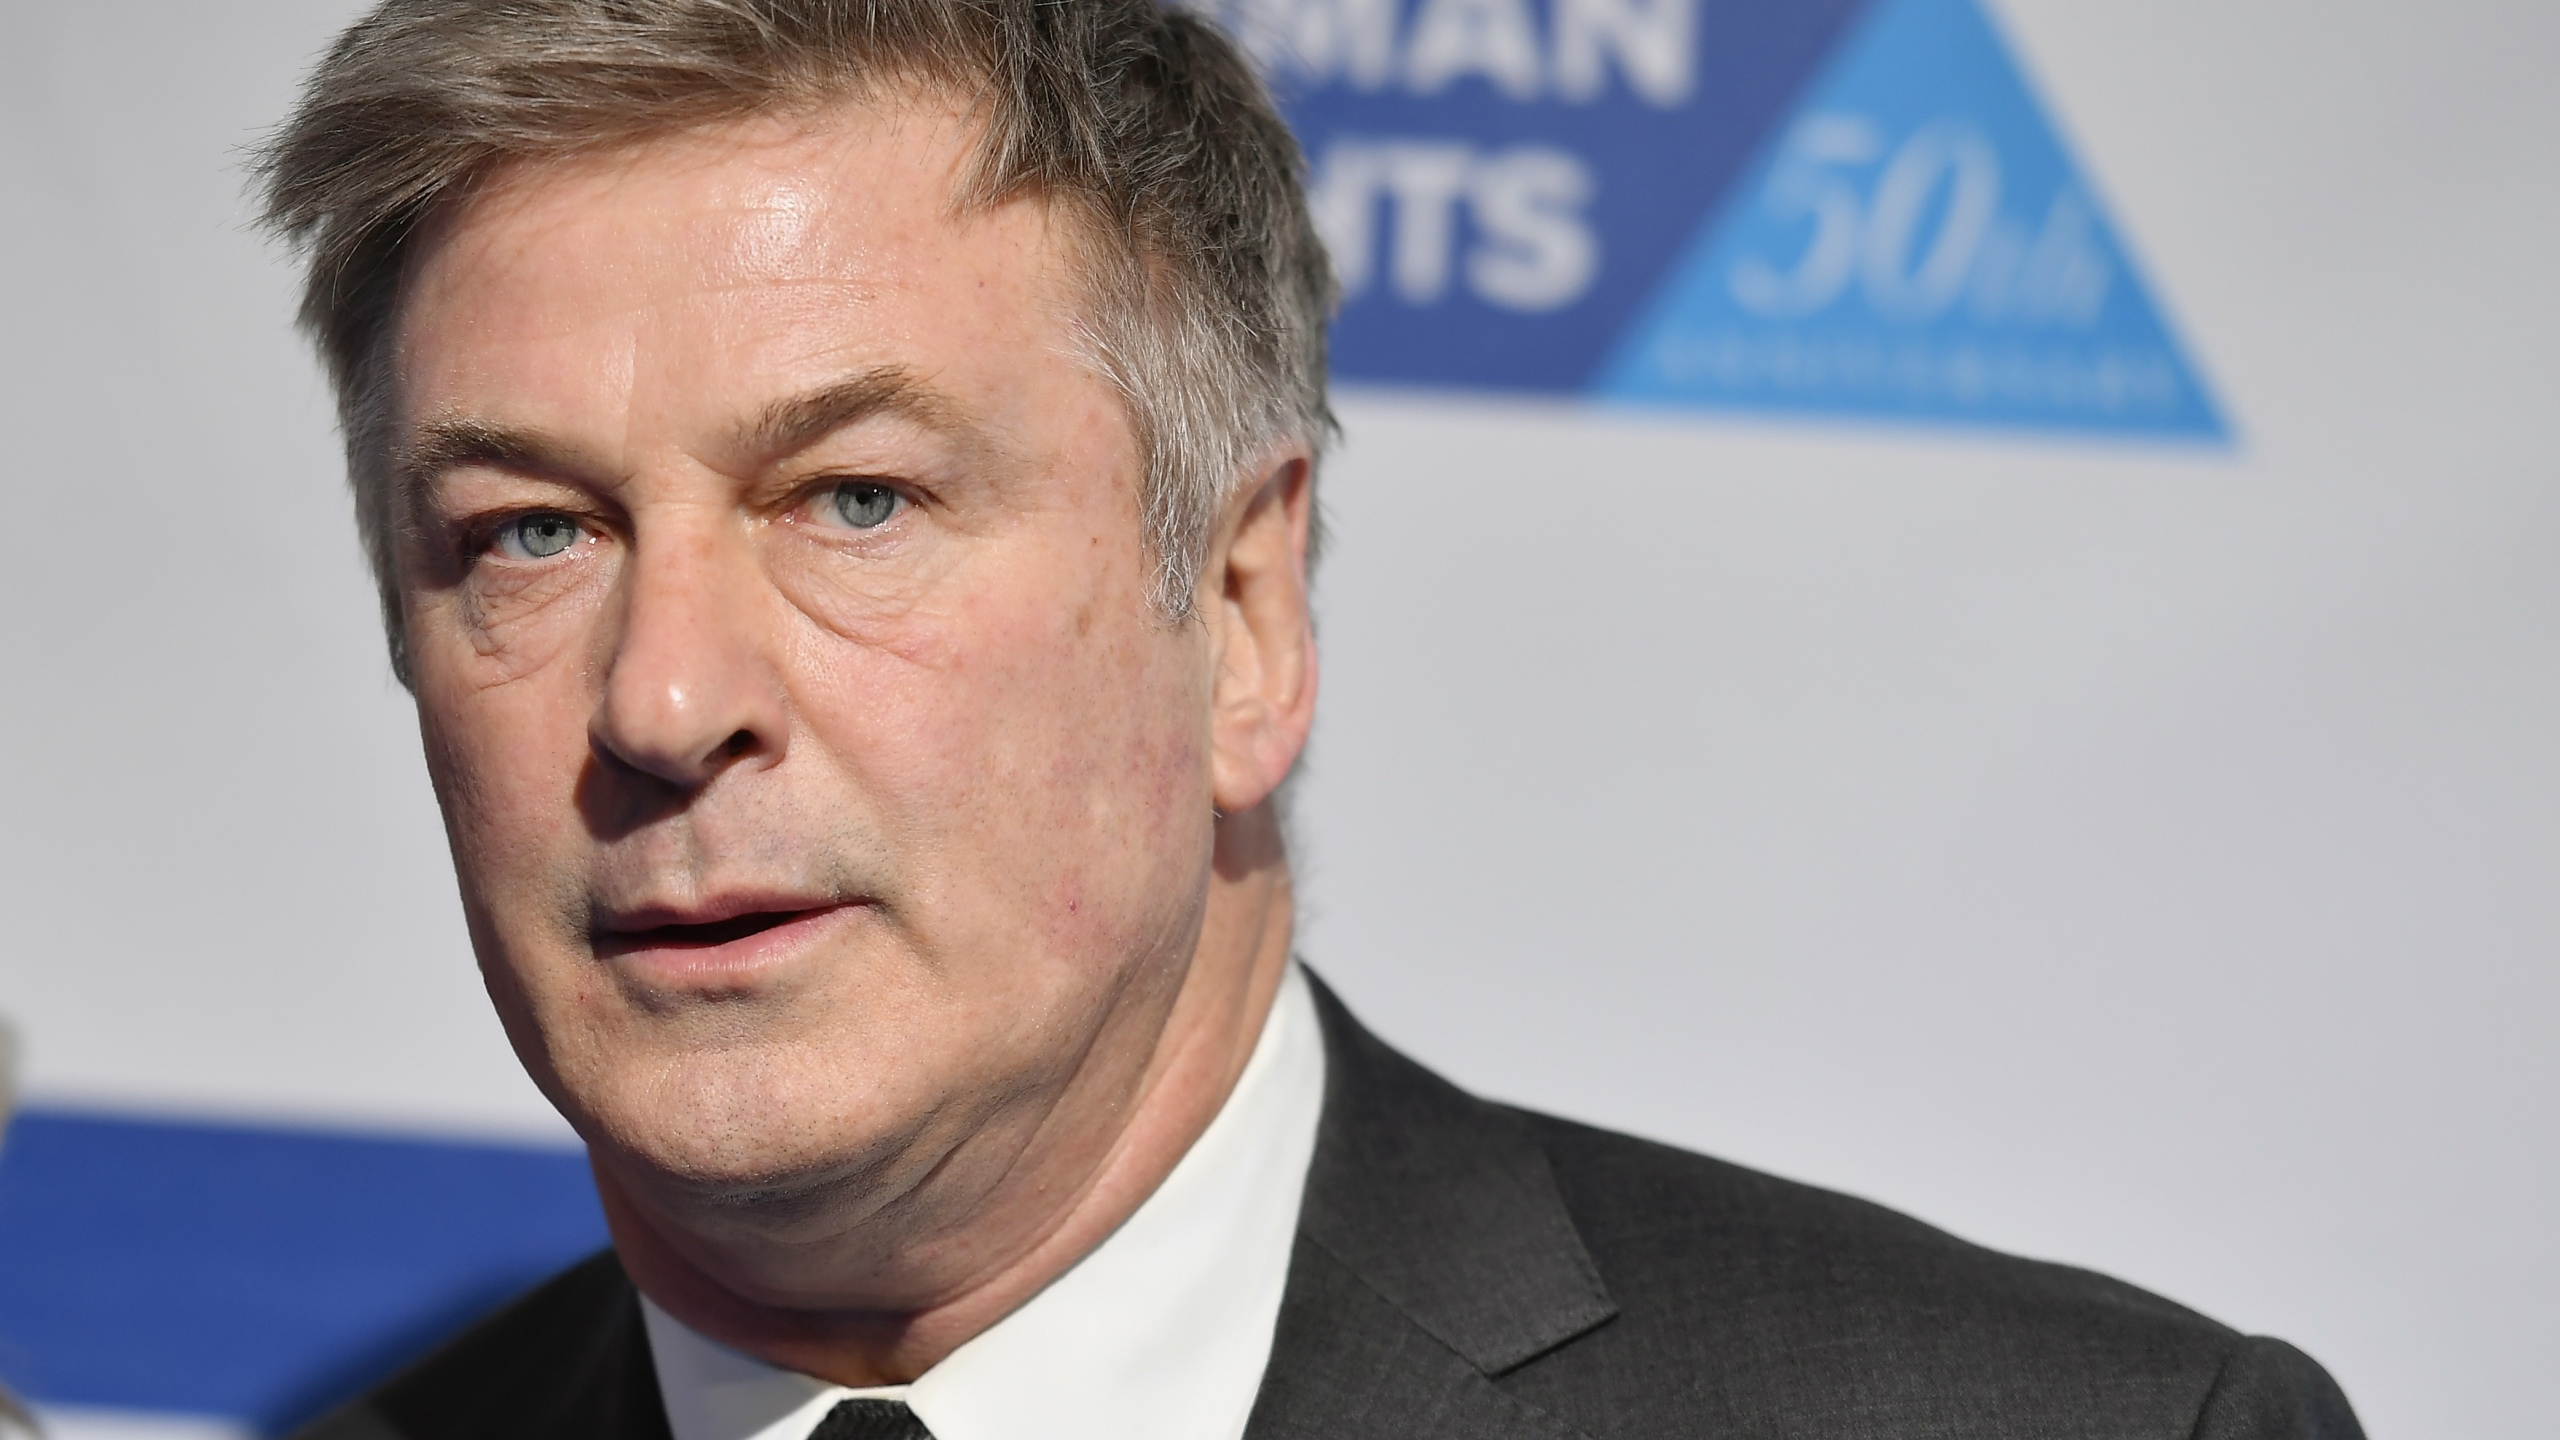 Actor Alec Baldwin attends the 2018 Robert F. Kennedy Human Rights' Ripple Of Hope Awards at New York Hilton Midtown on Dec. 12, 2018, in New York City. (ANGELA WEISS/AFP/Getty Images)